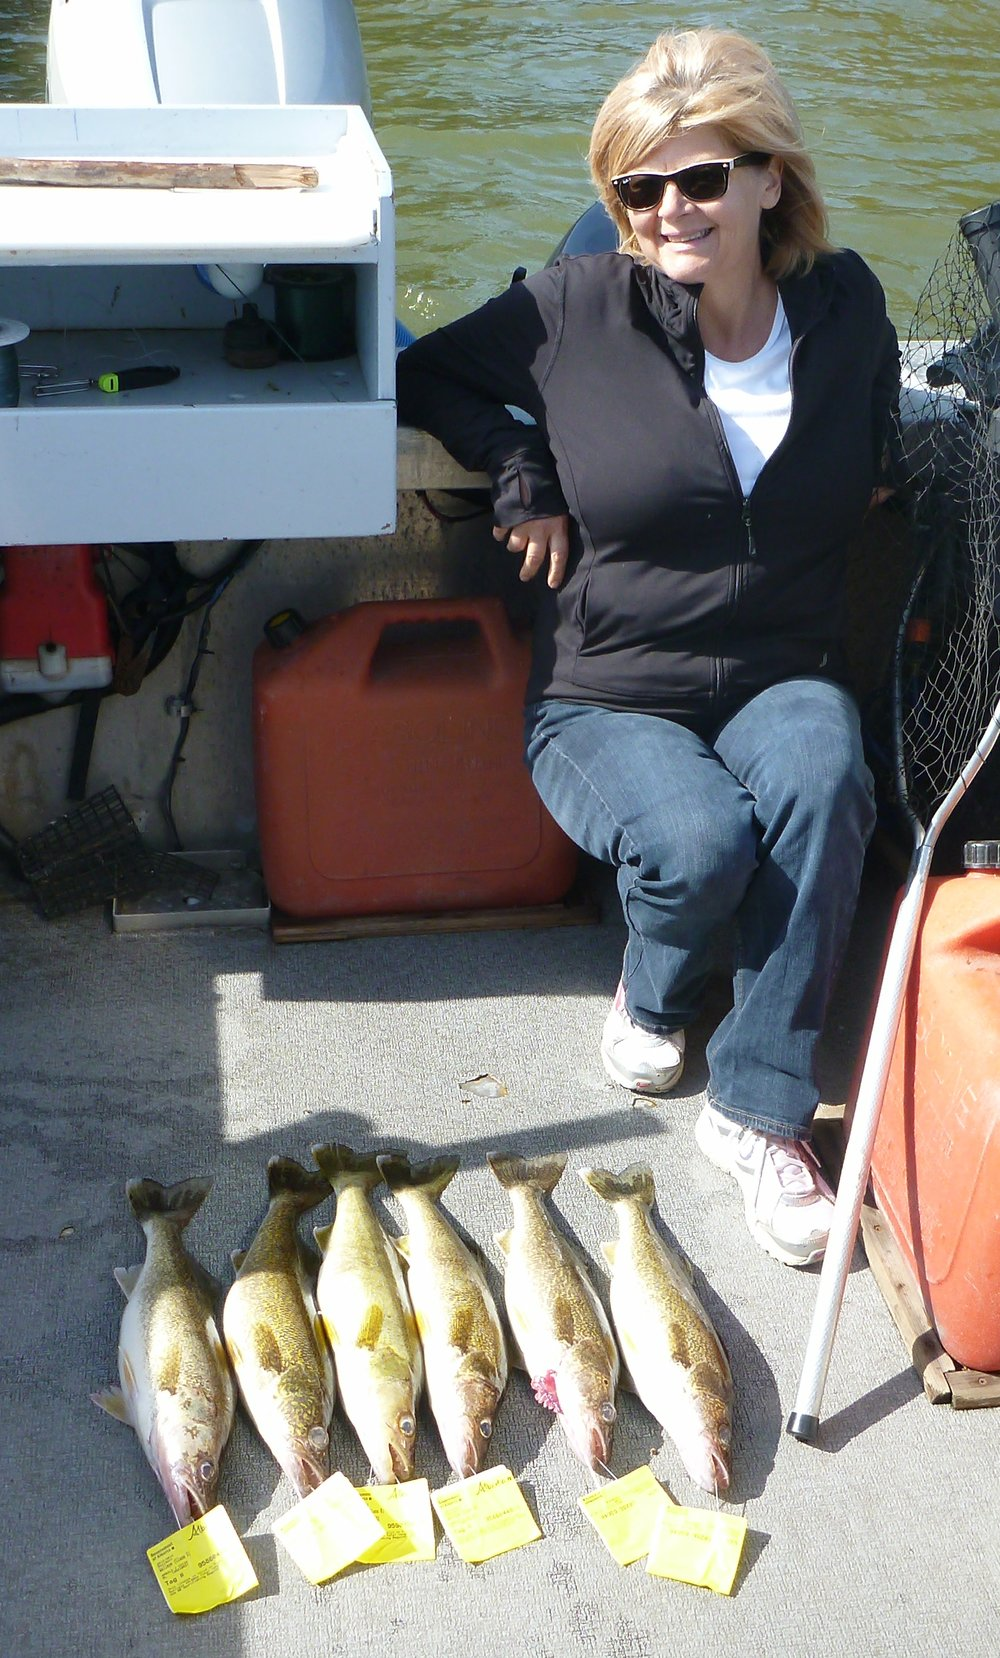 P1010301-walleye-Janice-crop.jpg